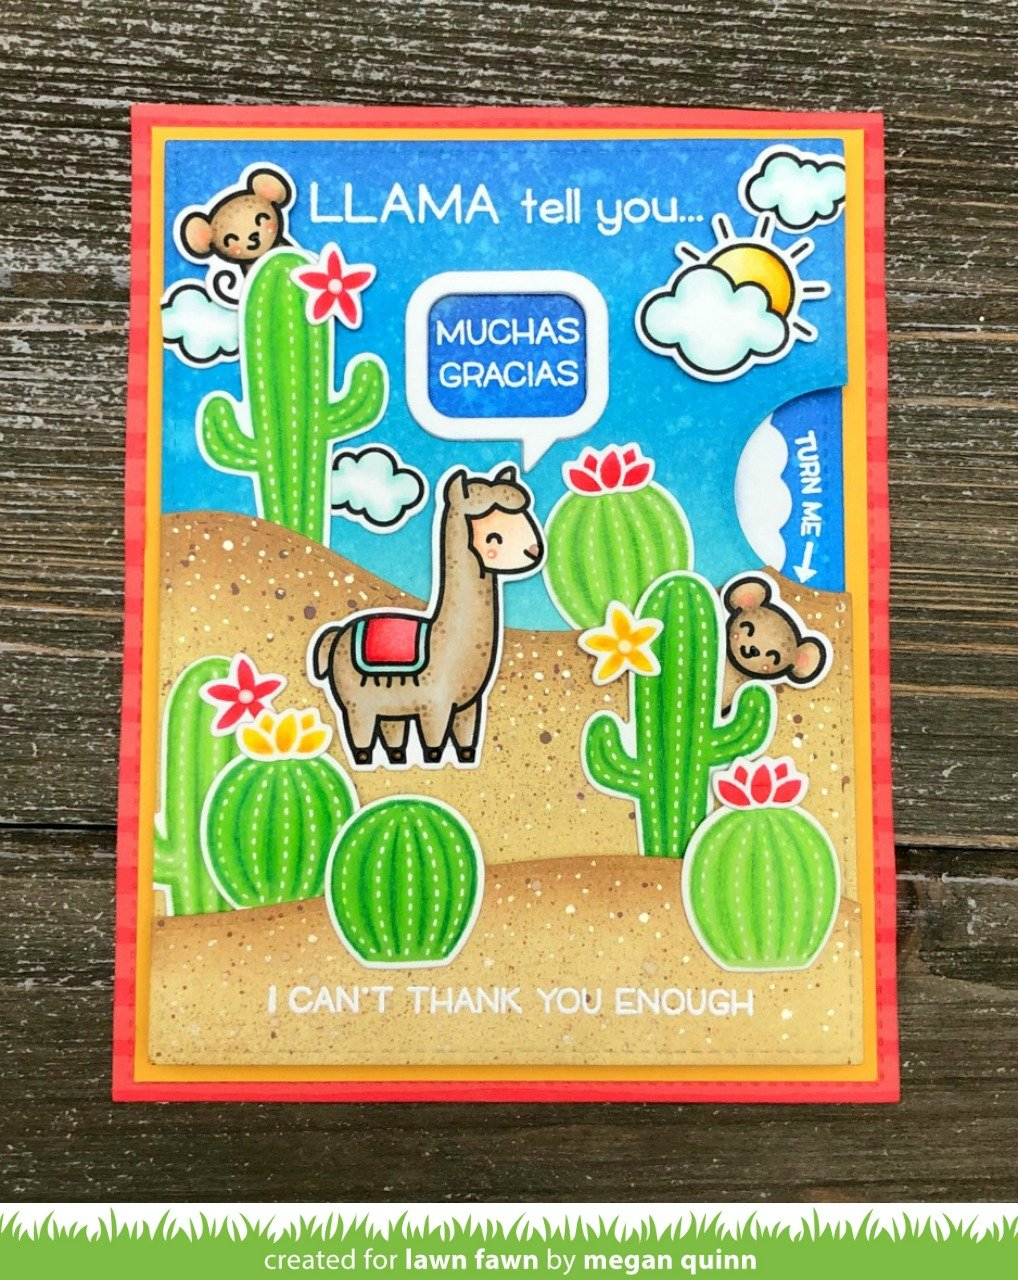 llama tell you